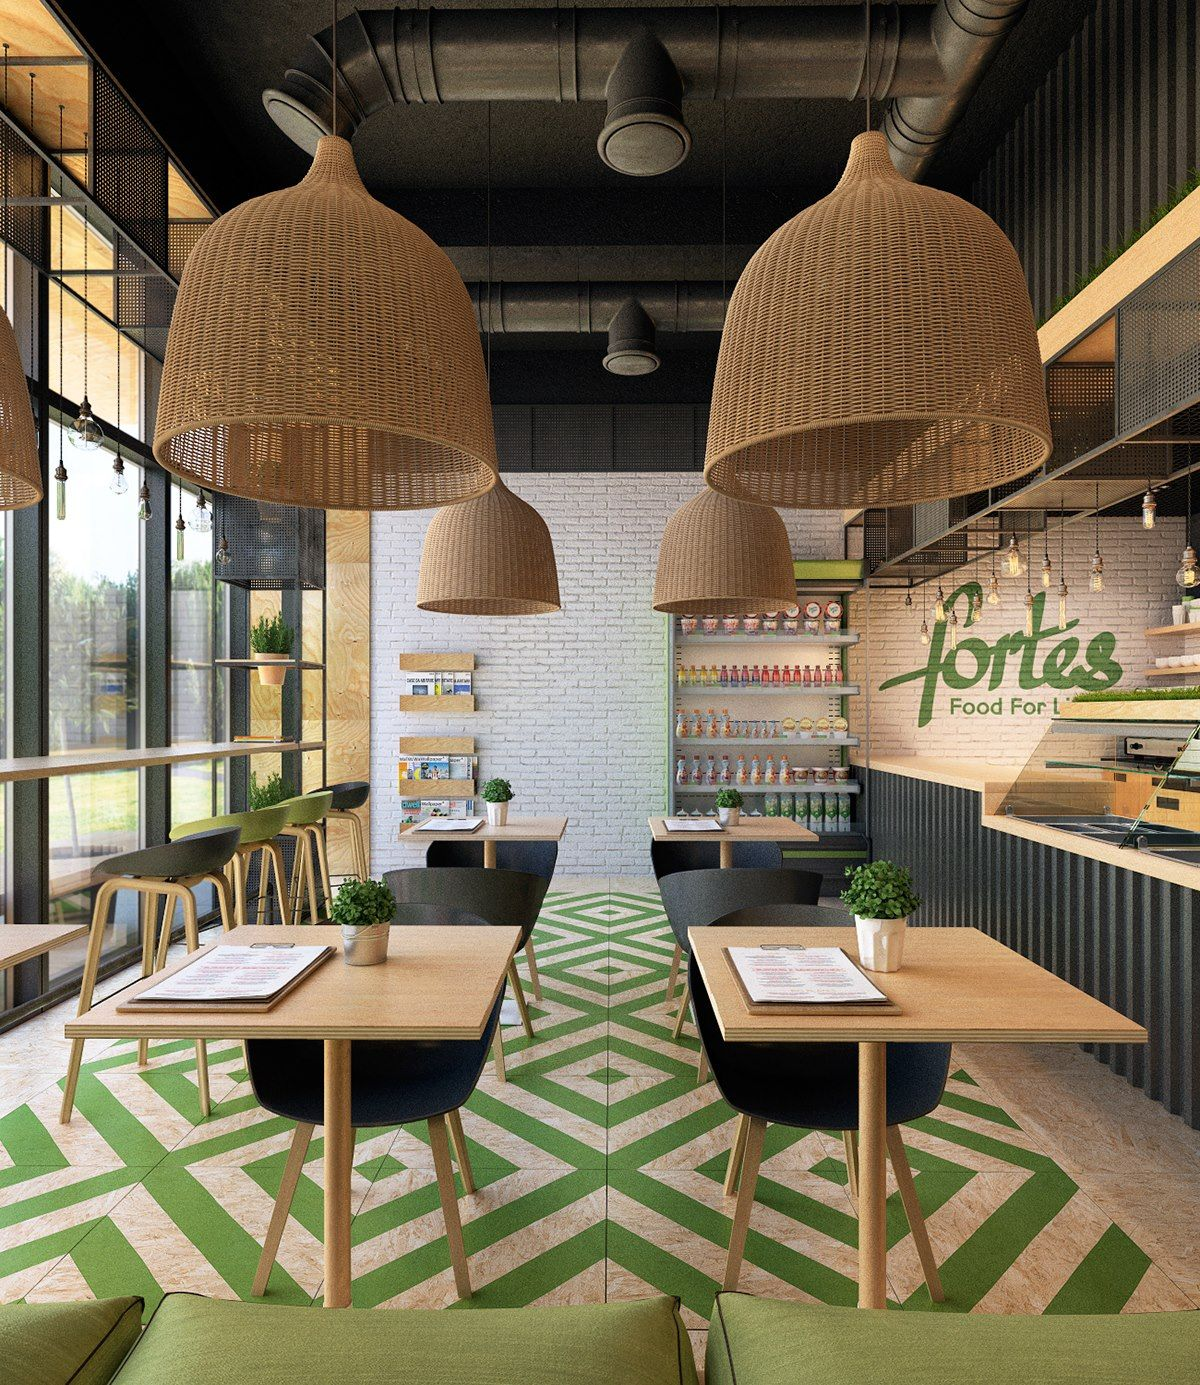 Kid Cafe Furniture: Clean Food Cafe Fortes By Katie Domracheva